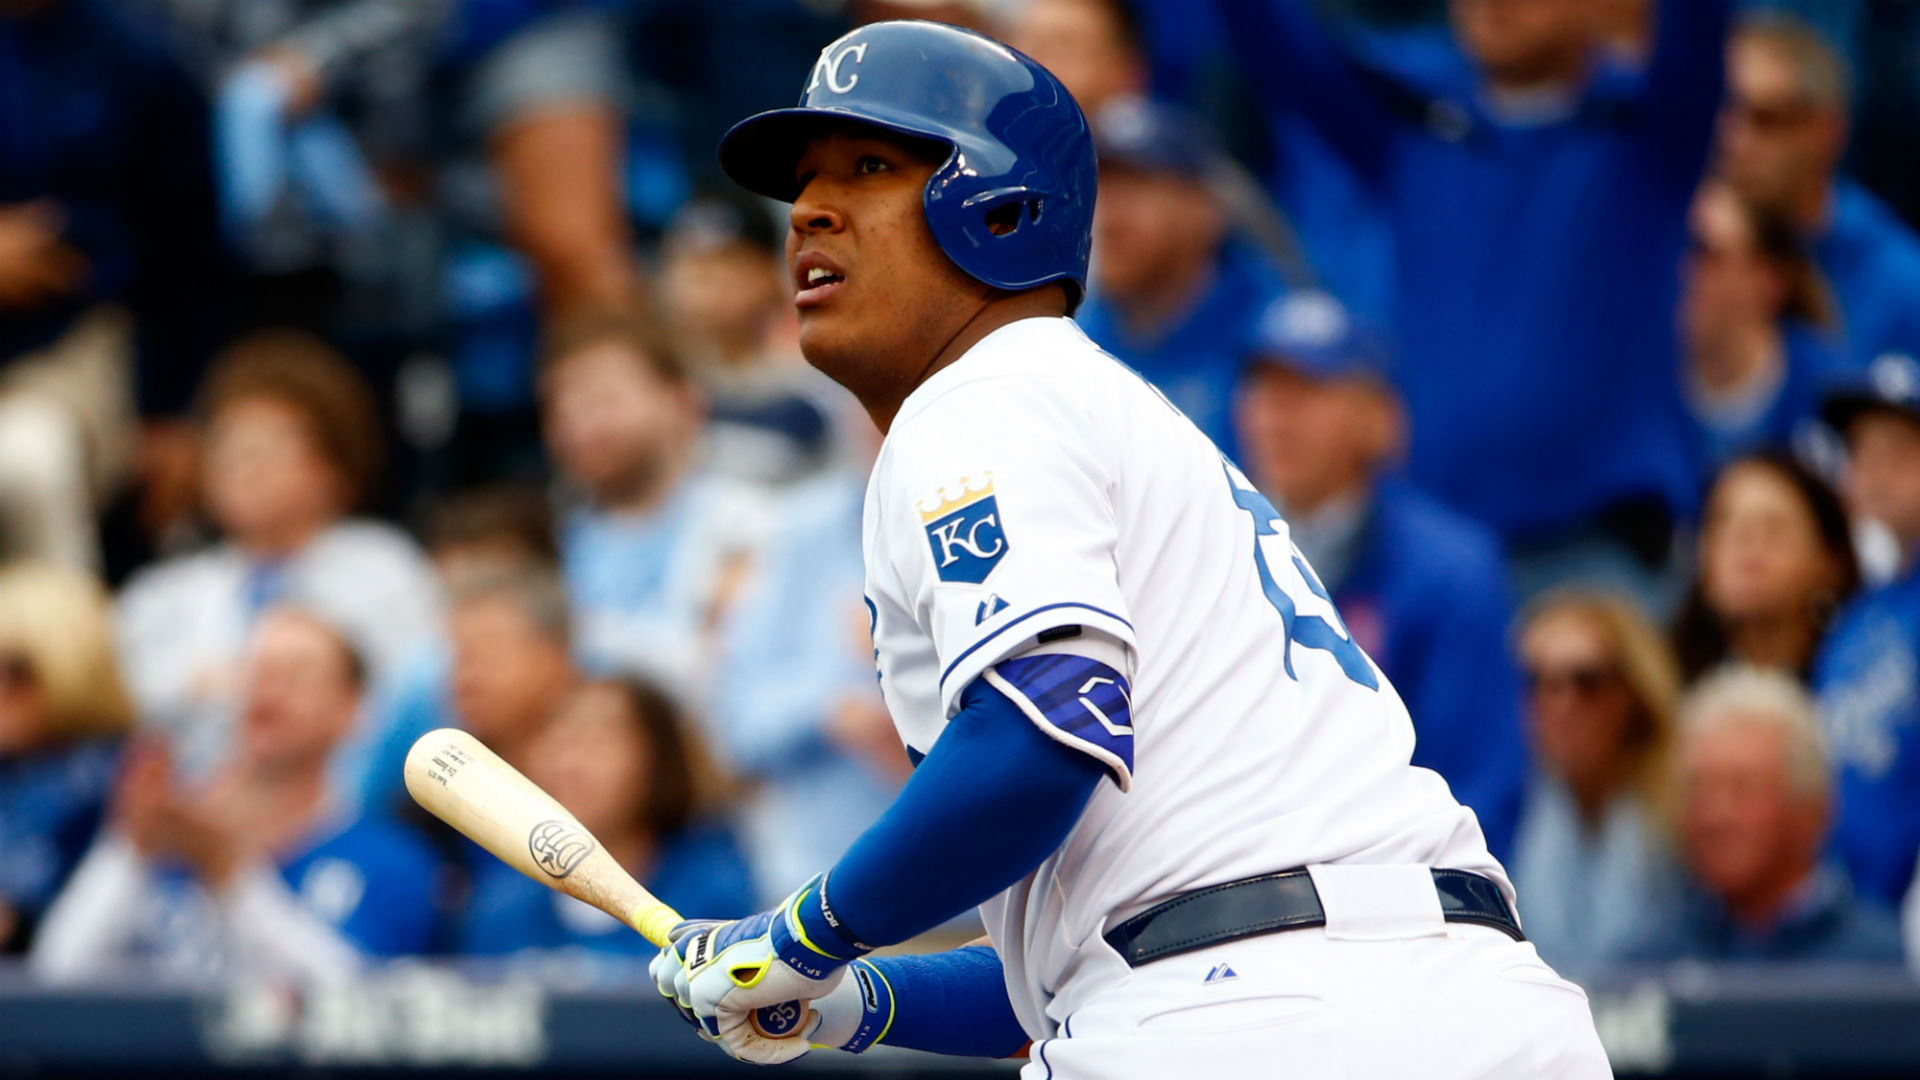 Salvador Perez Out With Freak Knee Injury